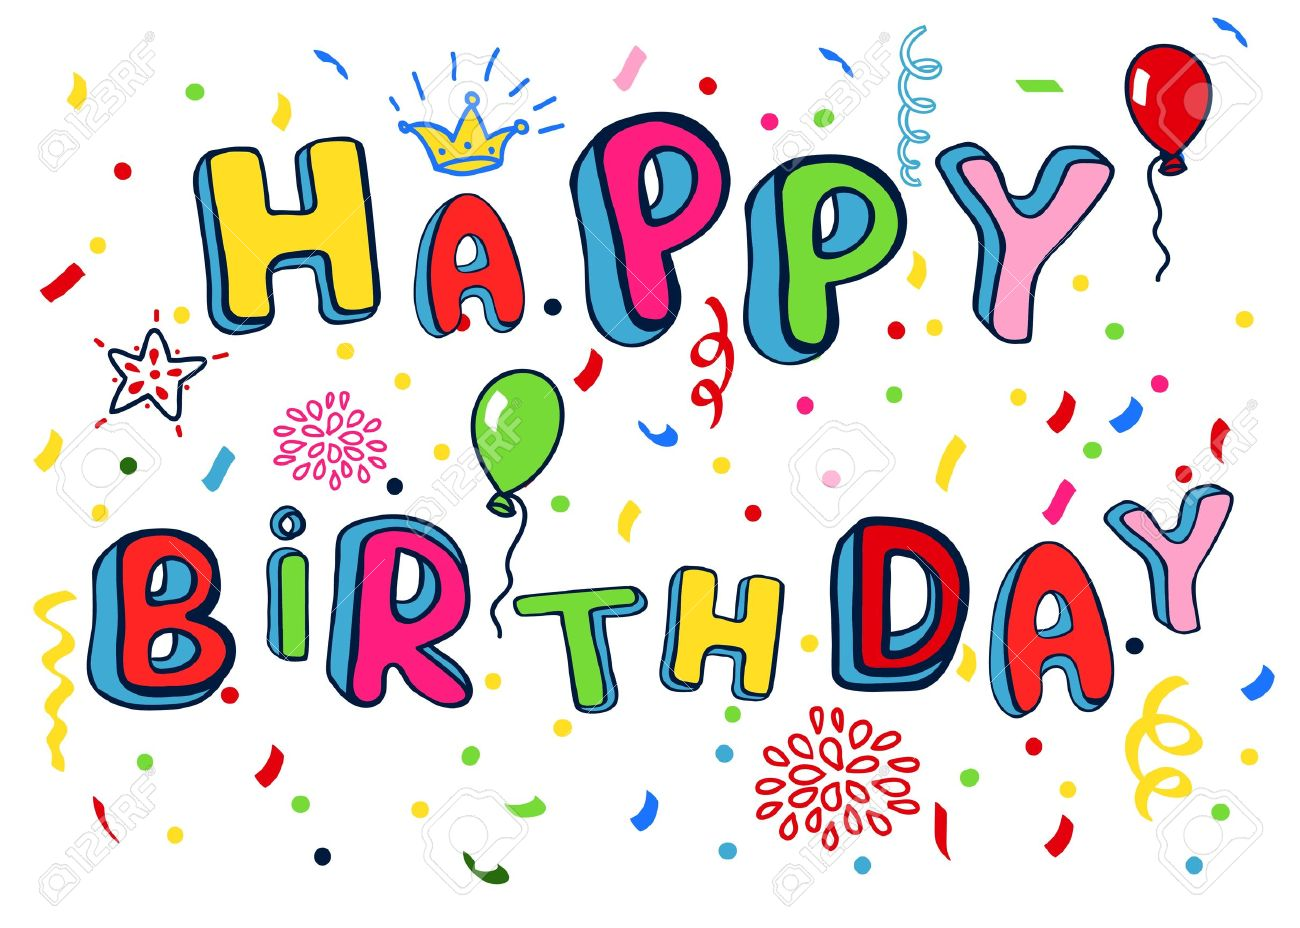 happy birthday poster images ; 14182429-happy-birthday-poster-rainbow-color-letters-